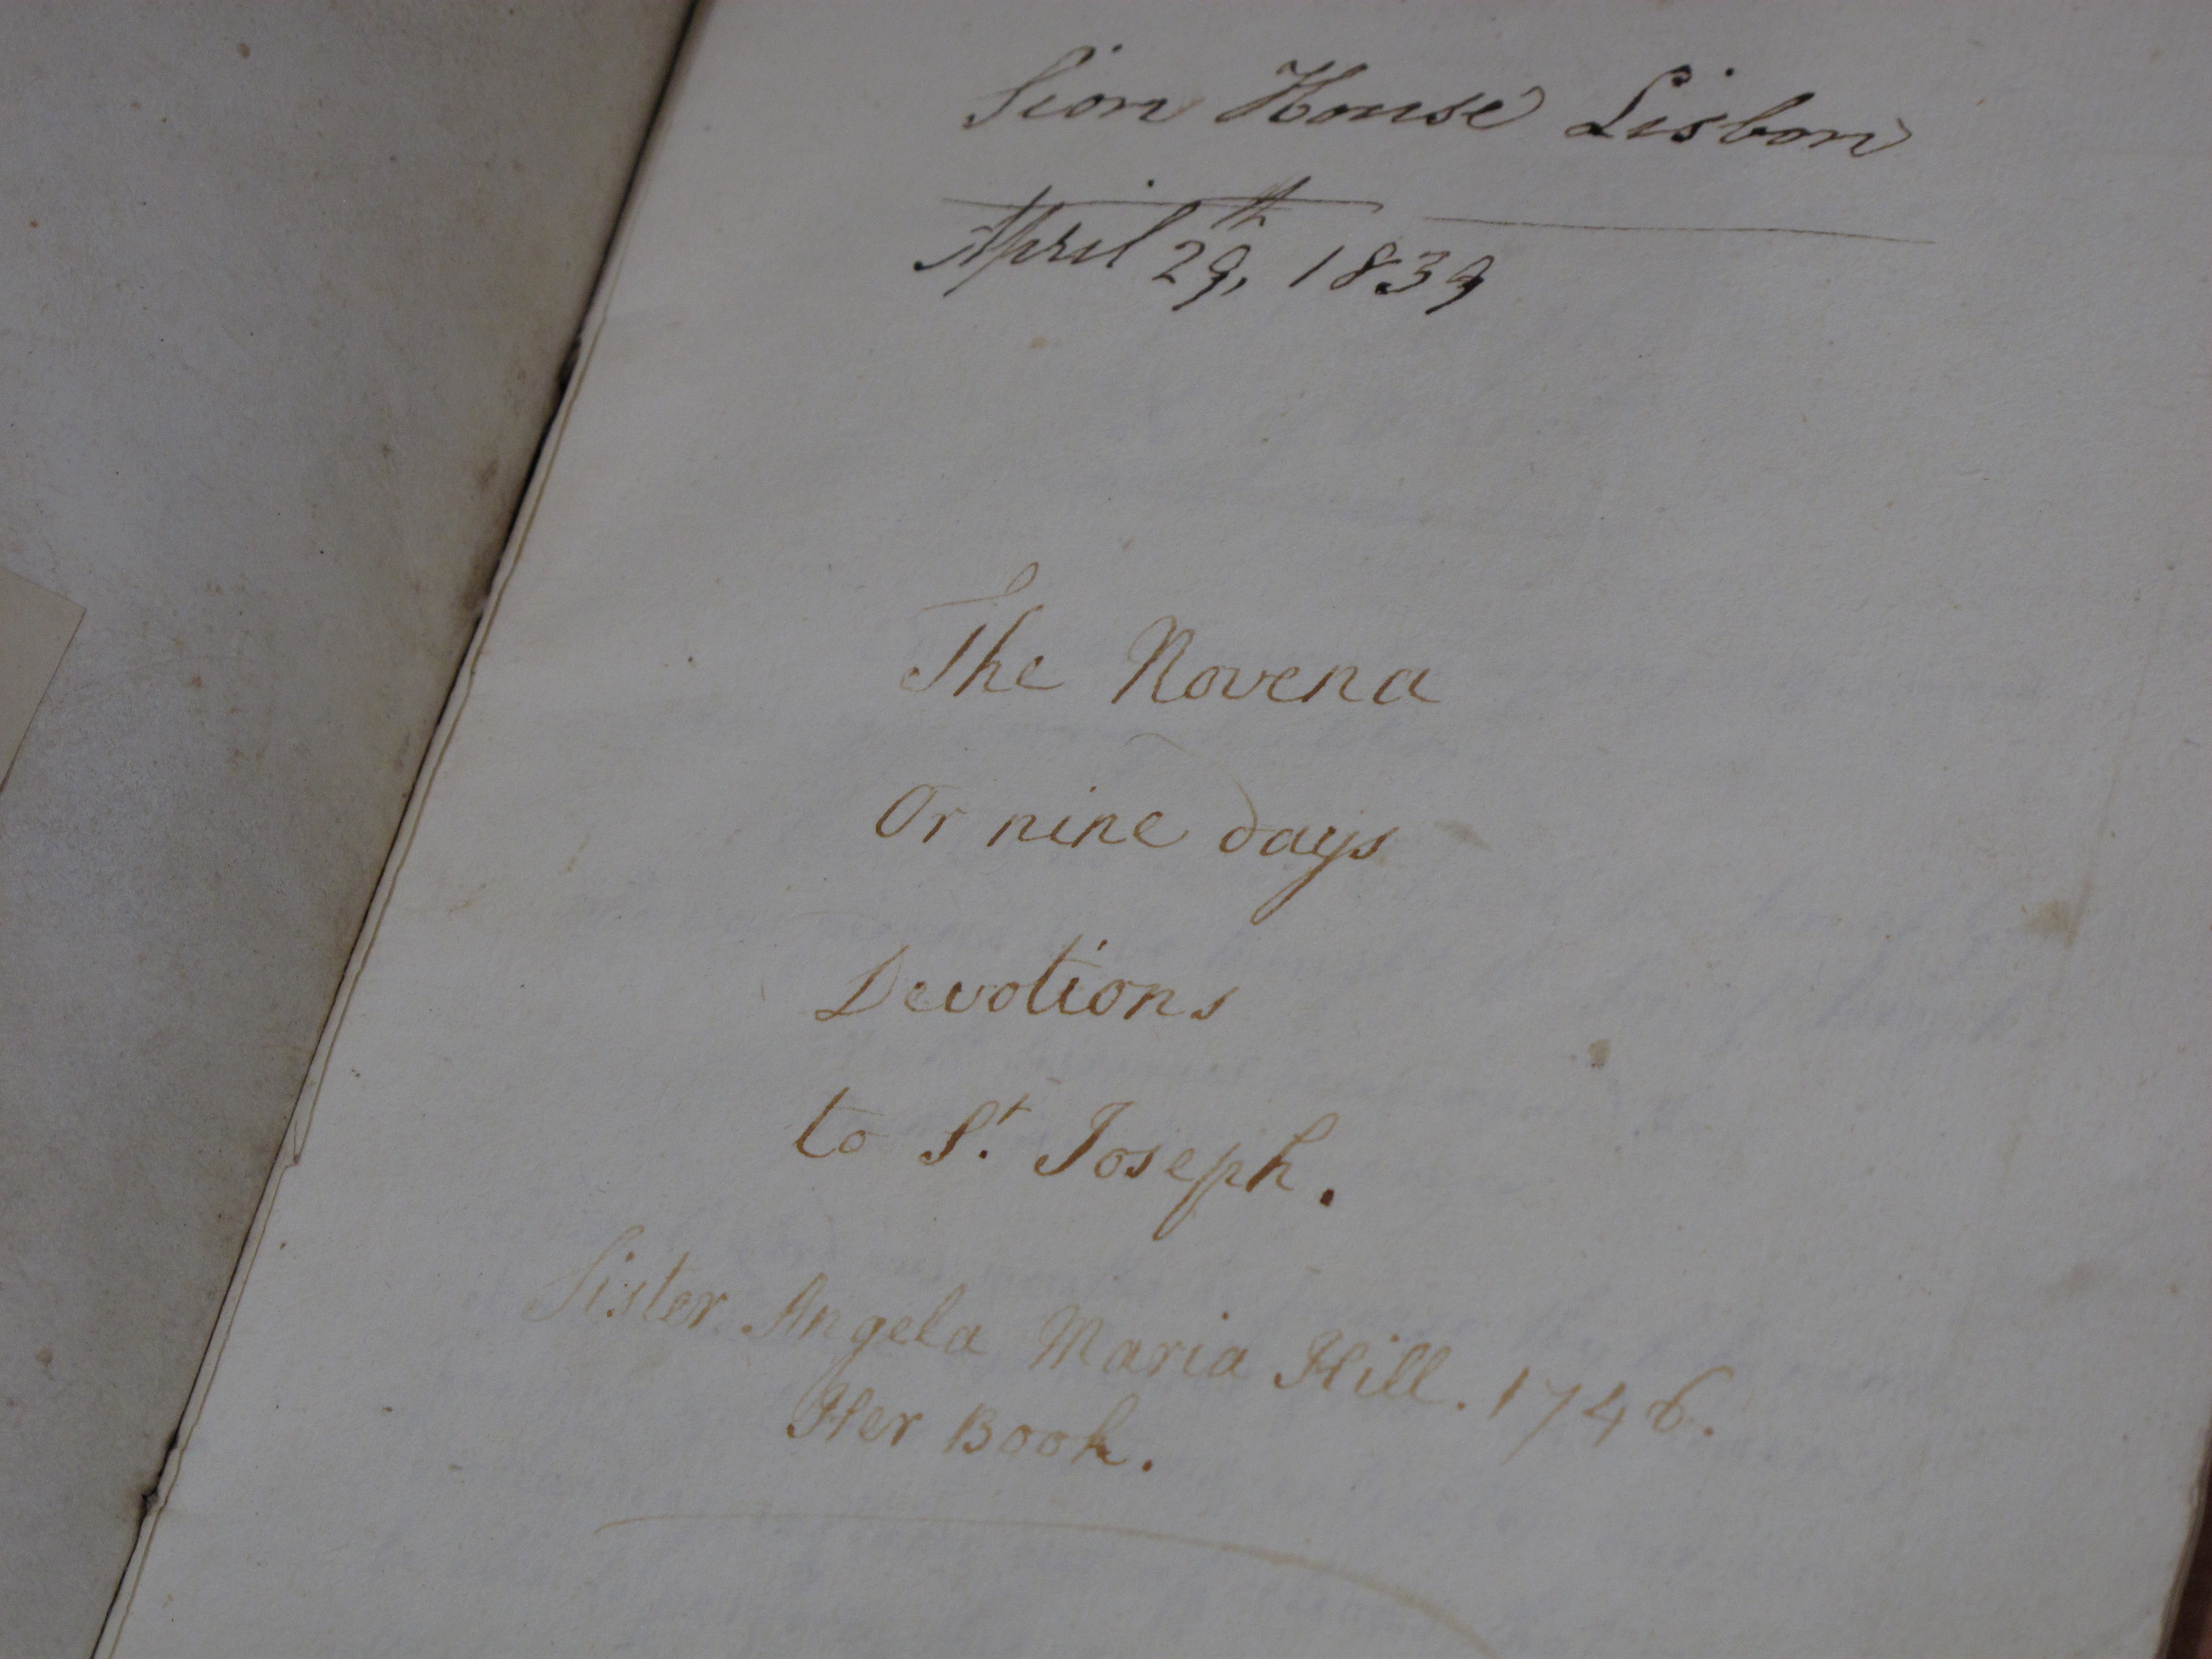 EUL MS 262/add2/16. Title page of a manuscript volume marked 'M.S.16' and entitled 'The Novena or nine days Devotions to St. Joseph', which includes an inscription by the scribe, Sister Angela Hill (1746).